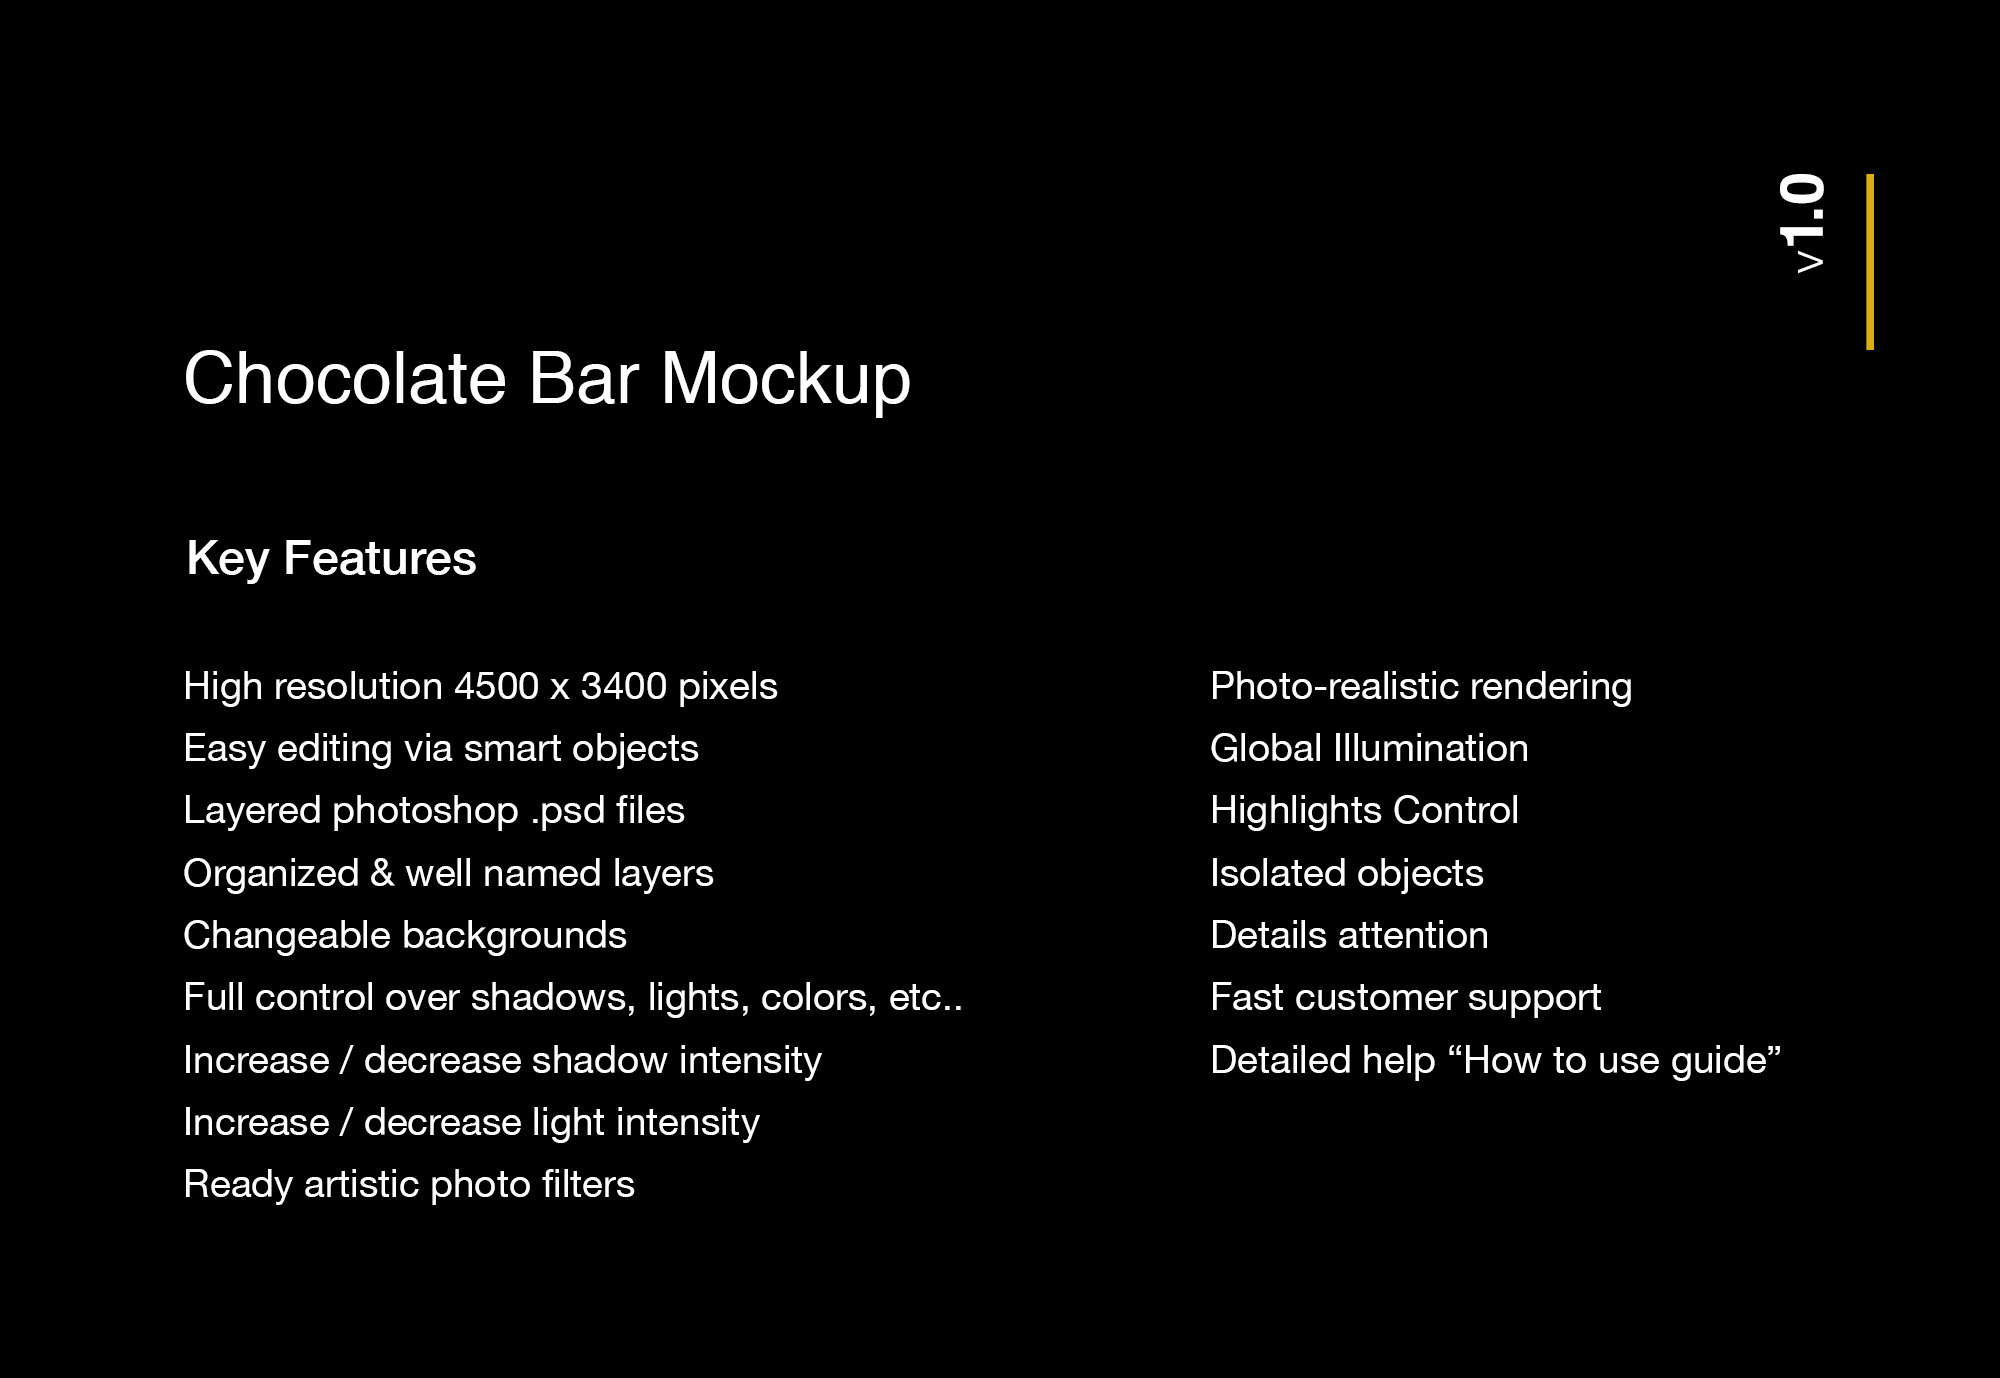 Chocolate Bar Mockup Features